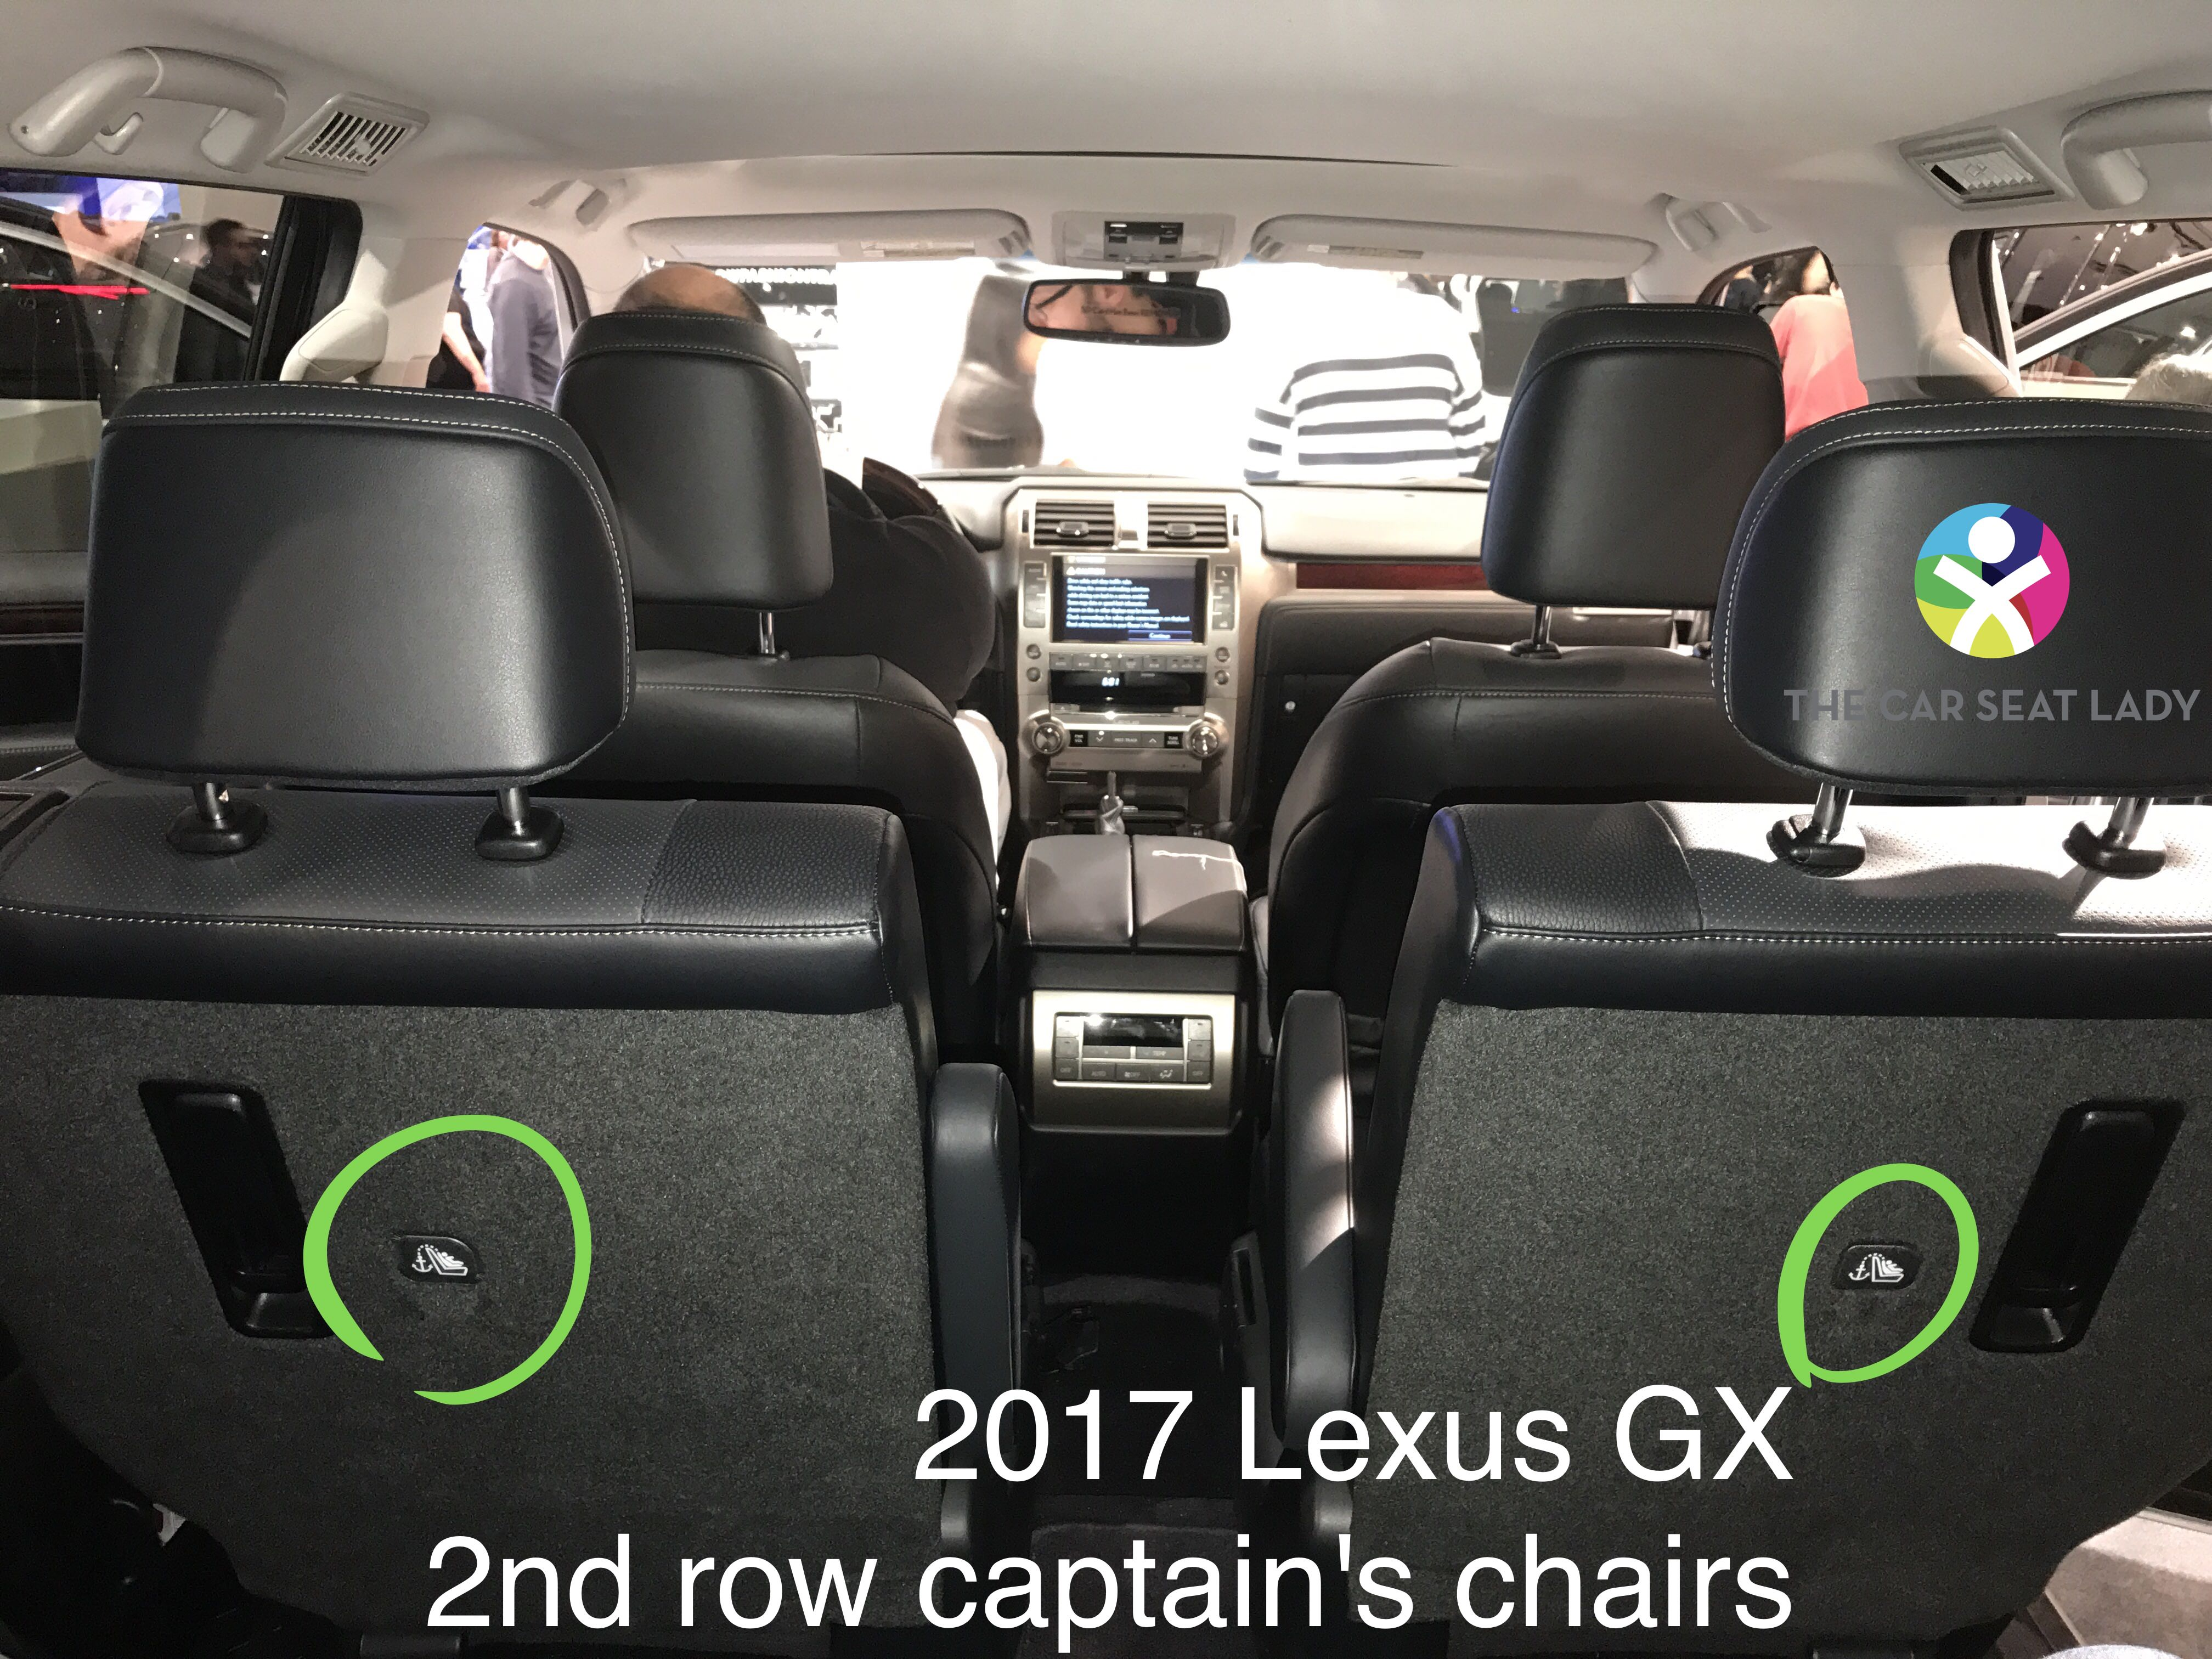 toyota 4runner captains chairs chair covers for living room the car seat lady lexus gx 6 seater model